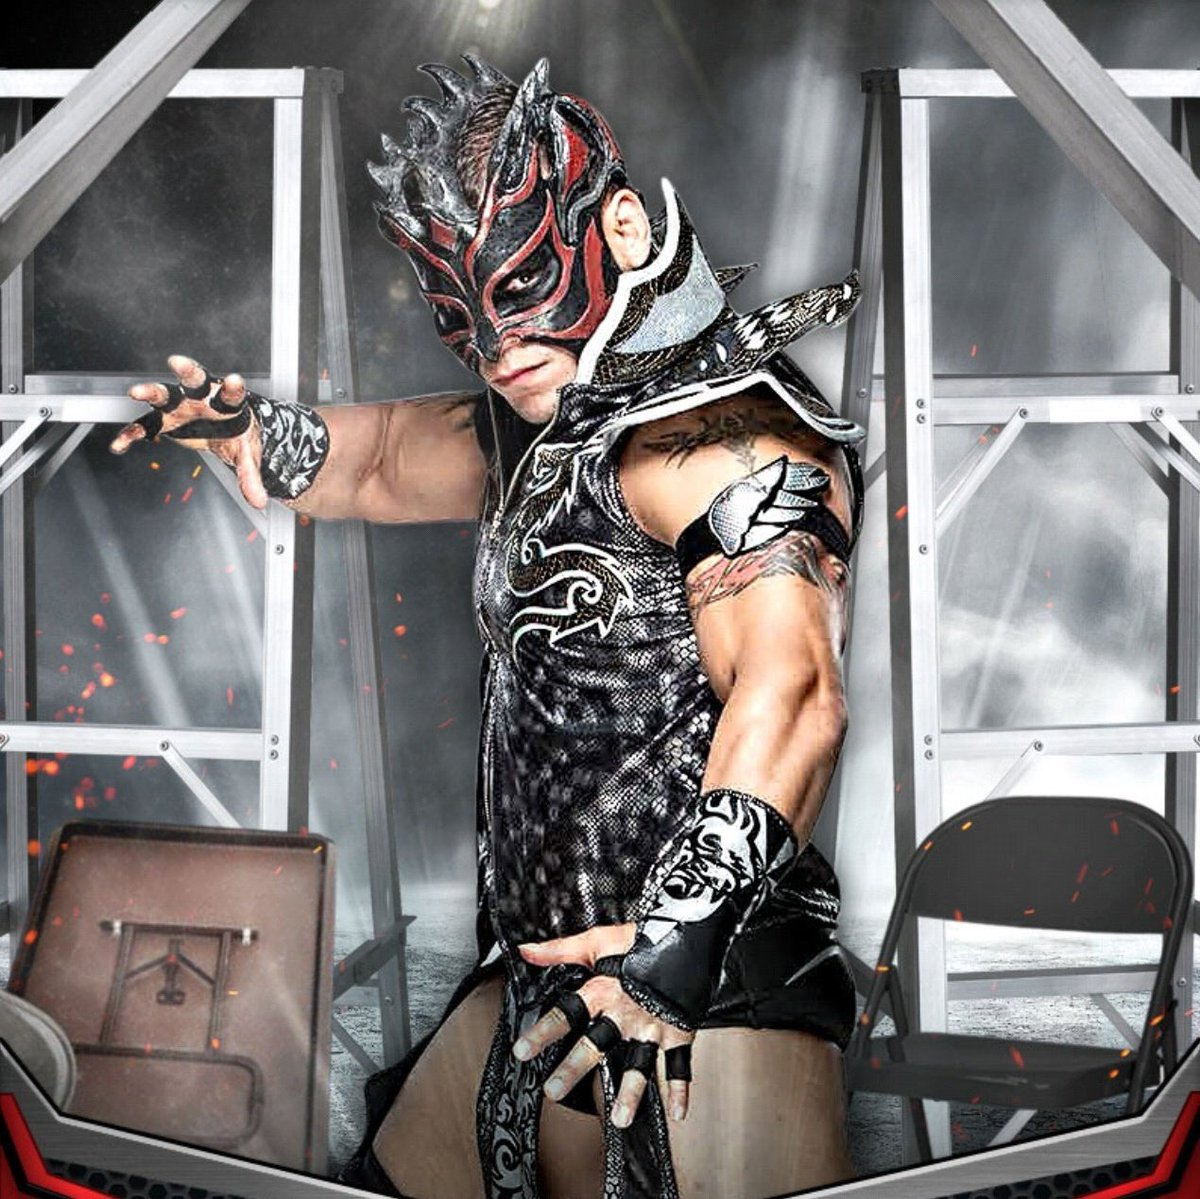 KalistoWWE photo